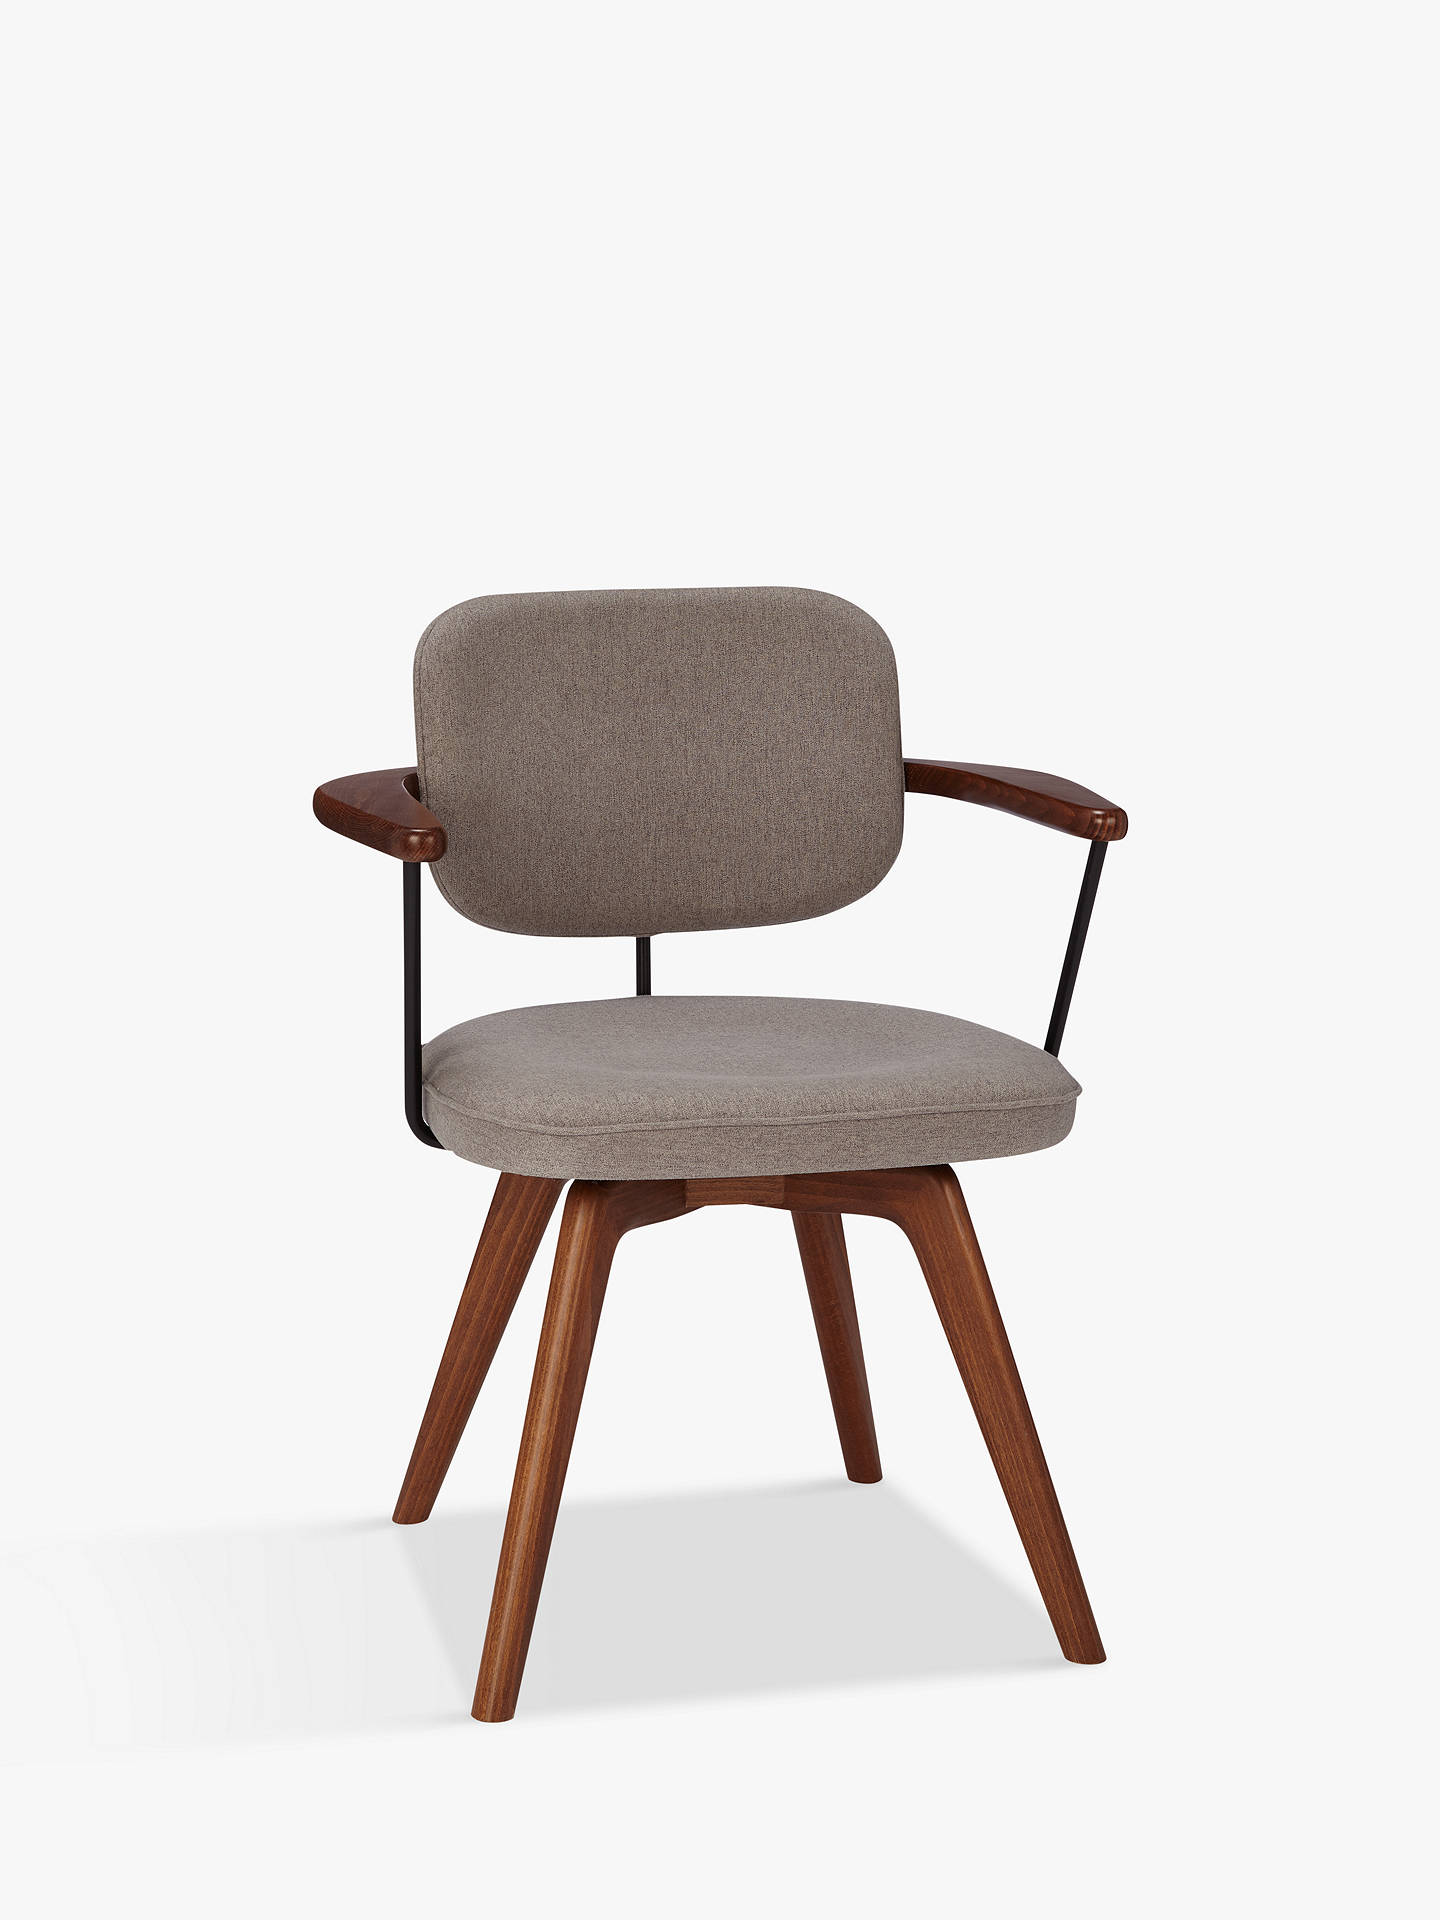 BuyJohn Lewis & Partners Soren Office Chair Online at johnlewis.com